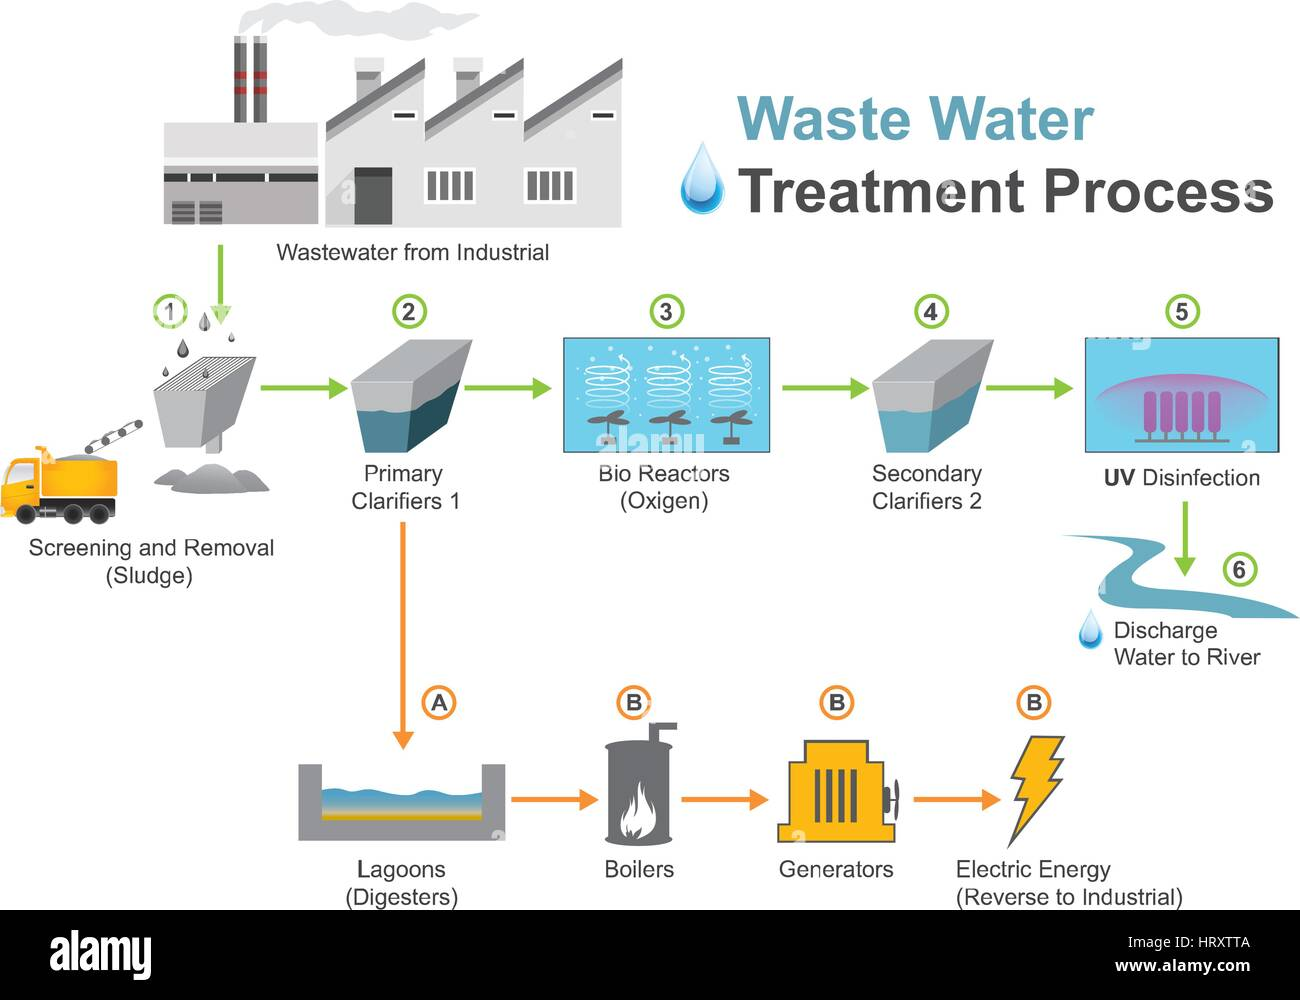 Wastewater treatment is a process used to convert wastewater which is water no longer needed or suitable for its - Stock Image